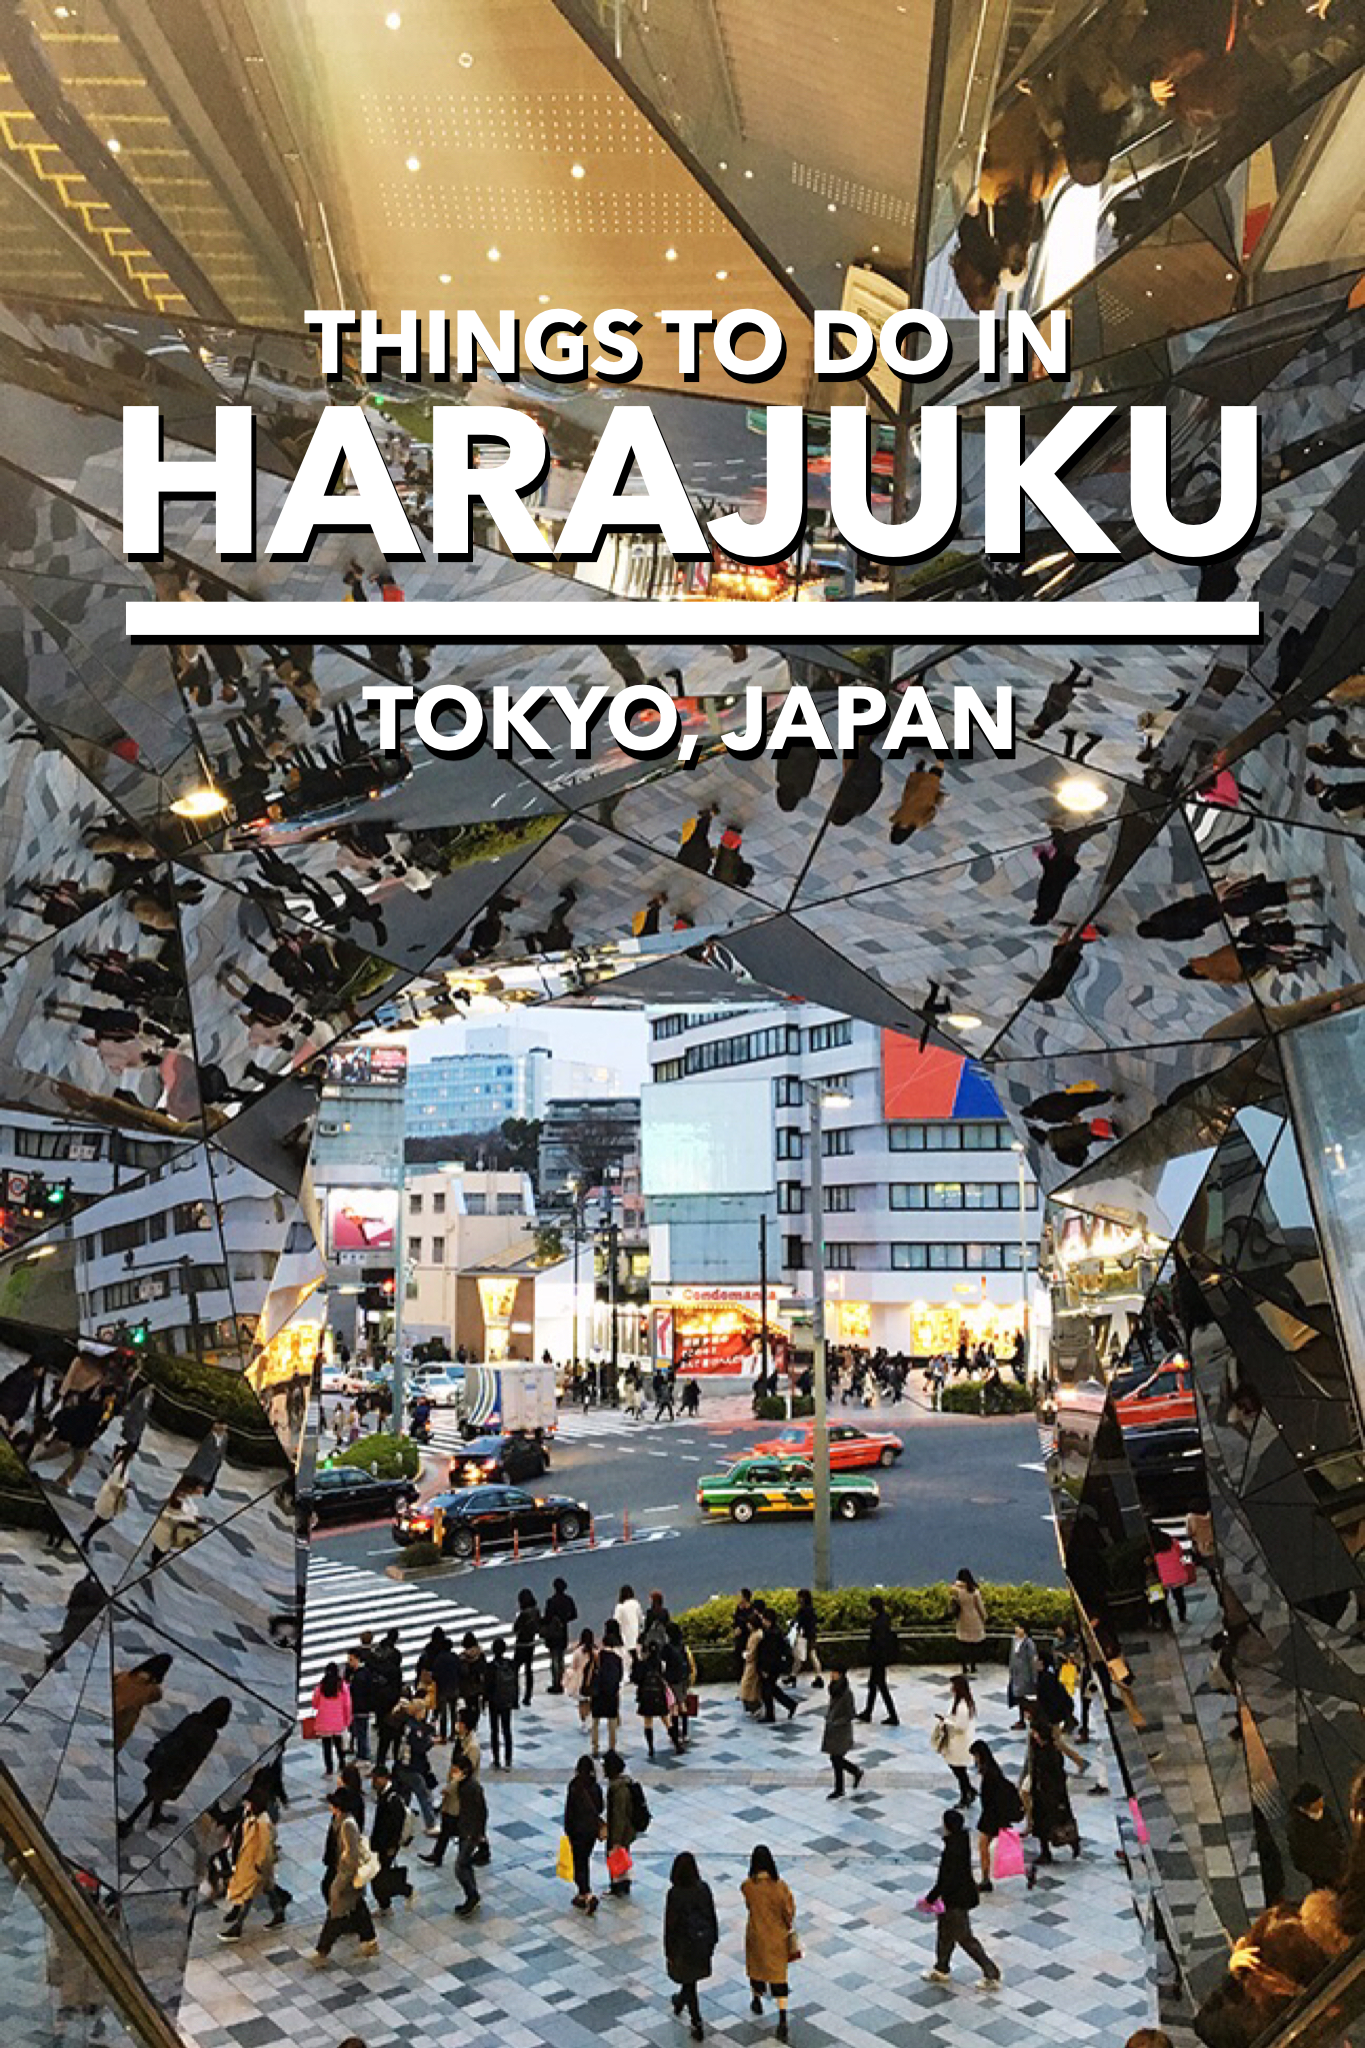 Harajuku is a popular shopping neighborhood in Tokyo that is known as being  the hub for Japanese pop culture.We highly recommend checking out this  unique neighborhood in central Tokyo that offers plenty of things to do and  see. Map included!